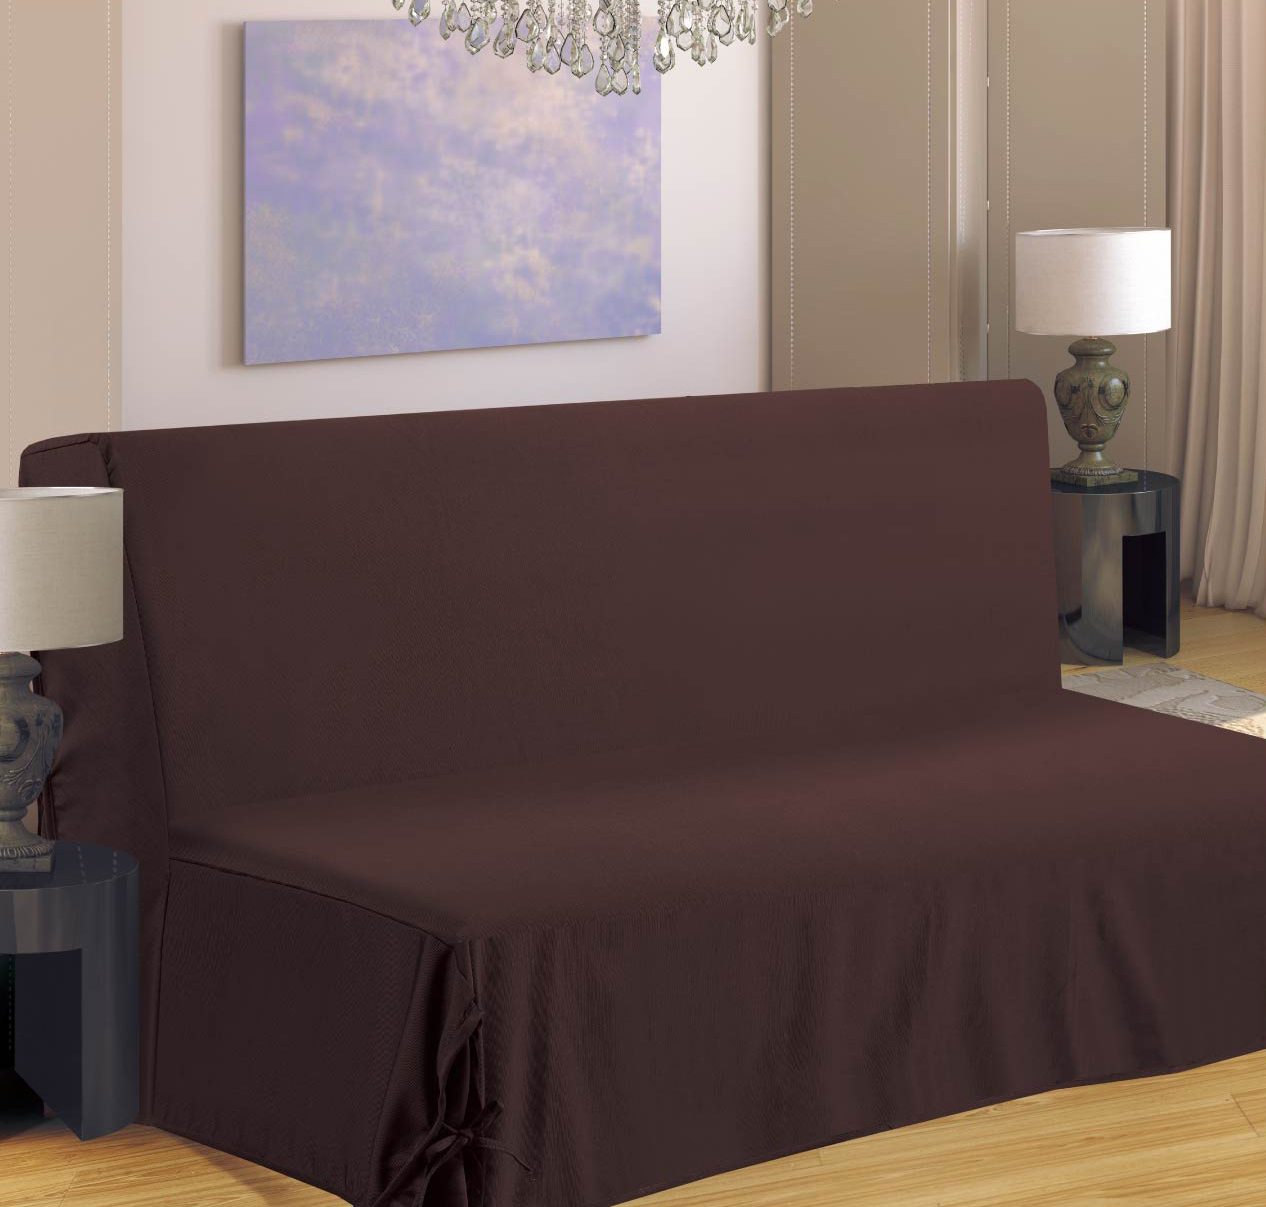 housse de canap pour bz chocolat noir bordeaux. Black Bedroom Furniture Sets. Home Design Ideas